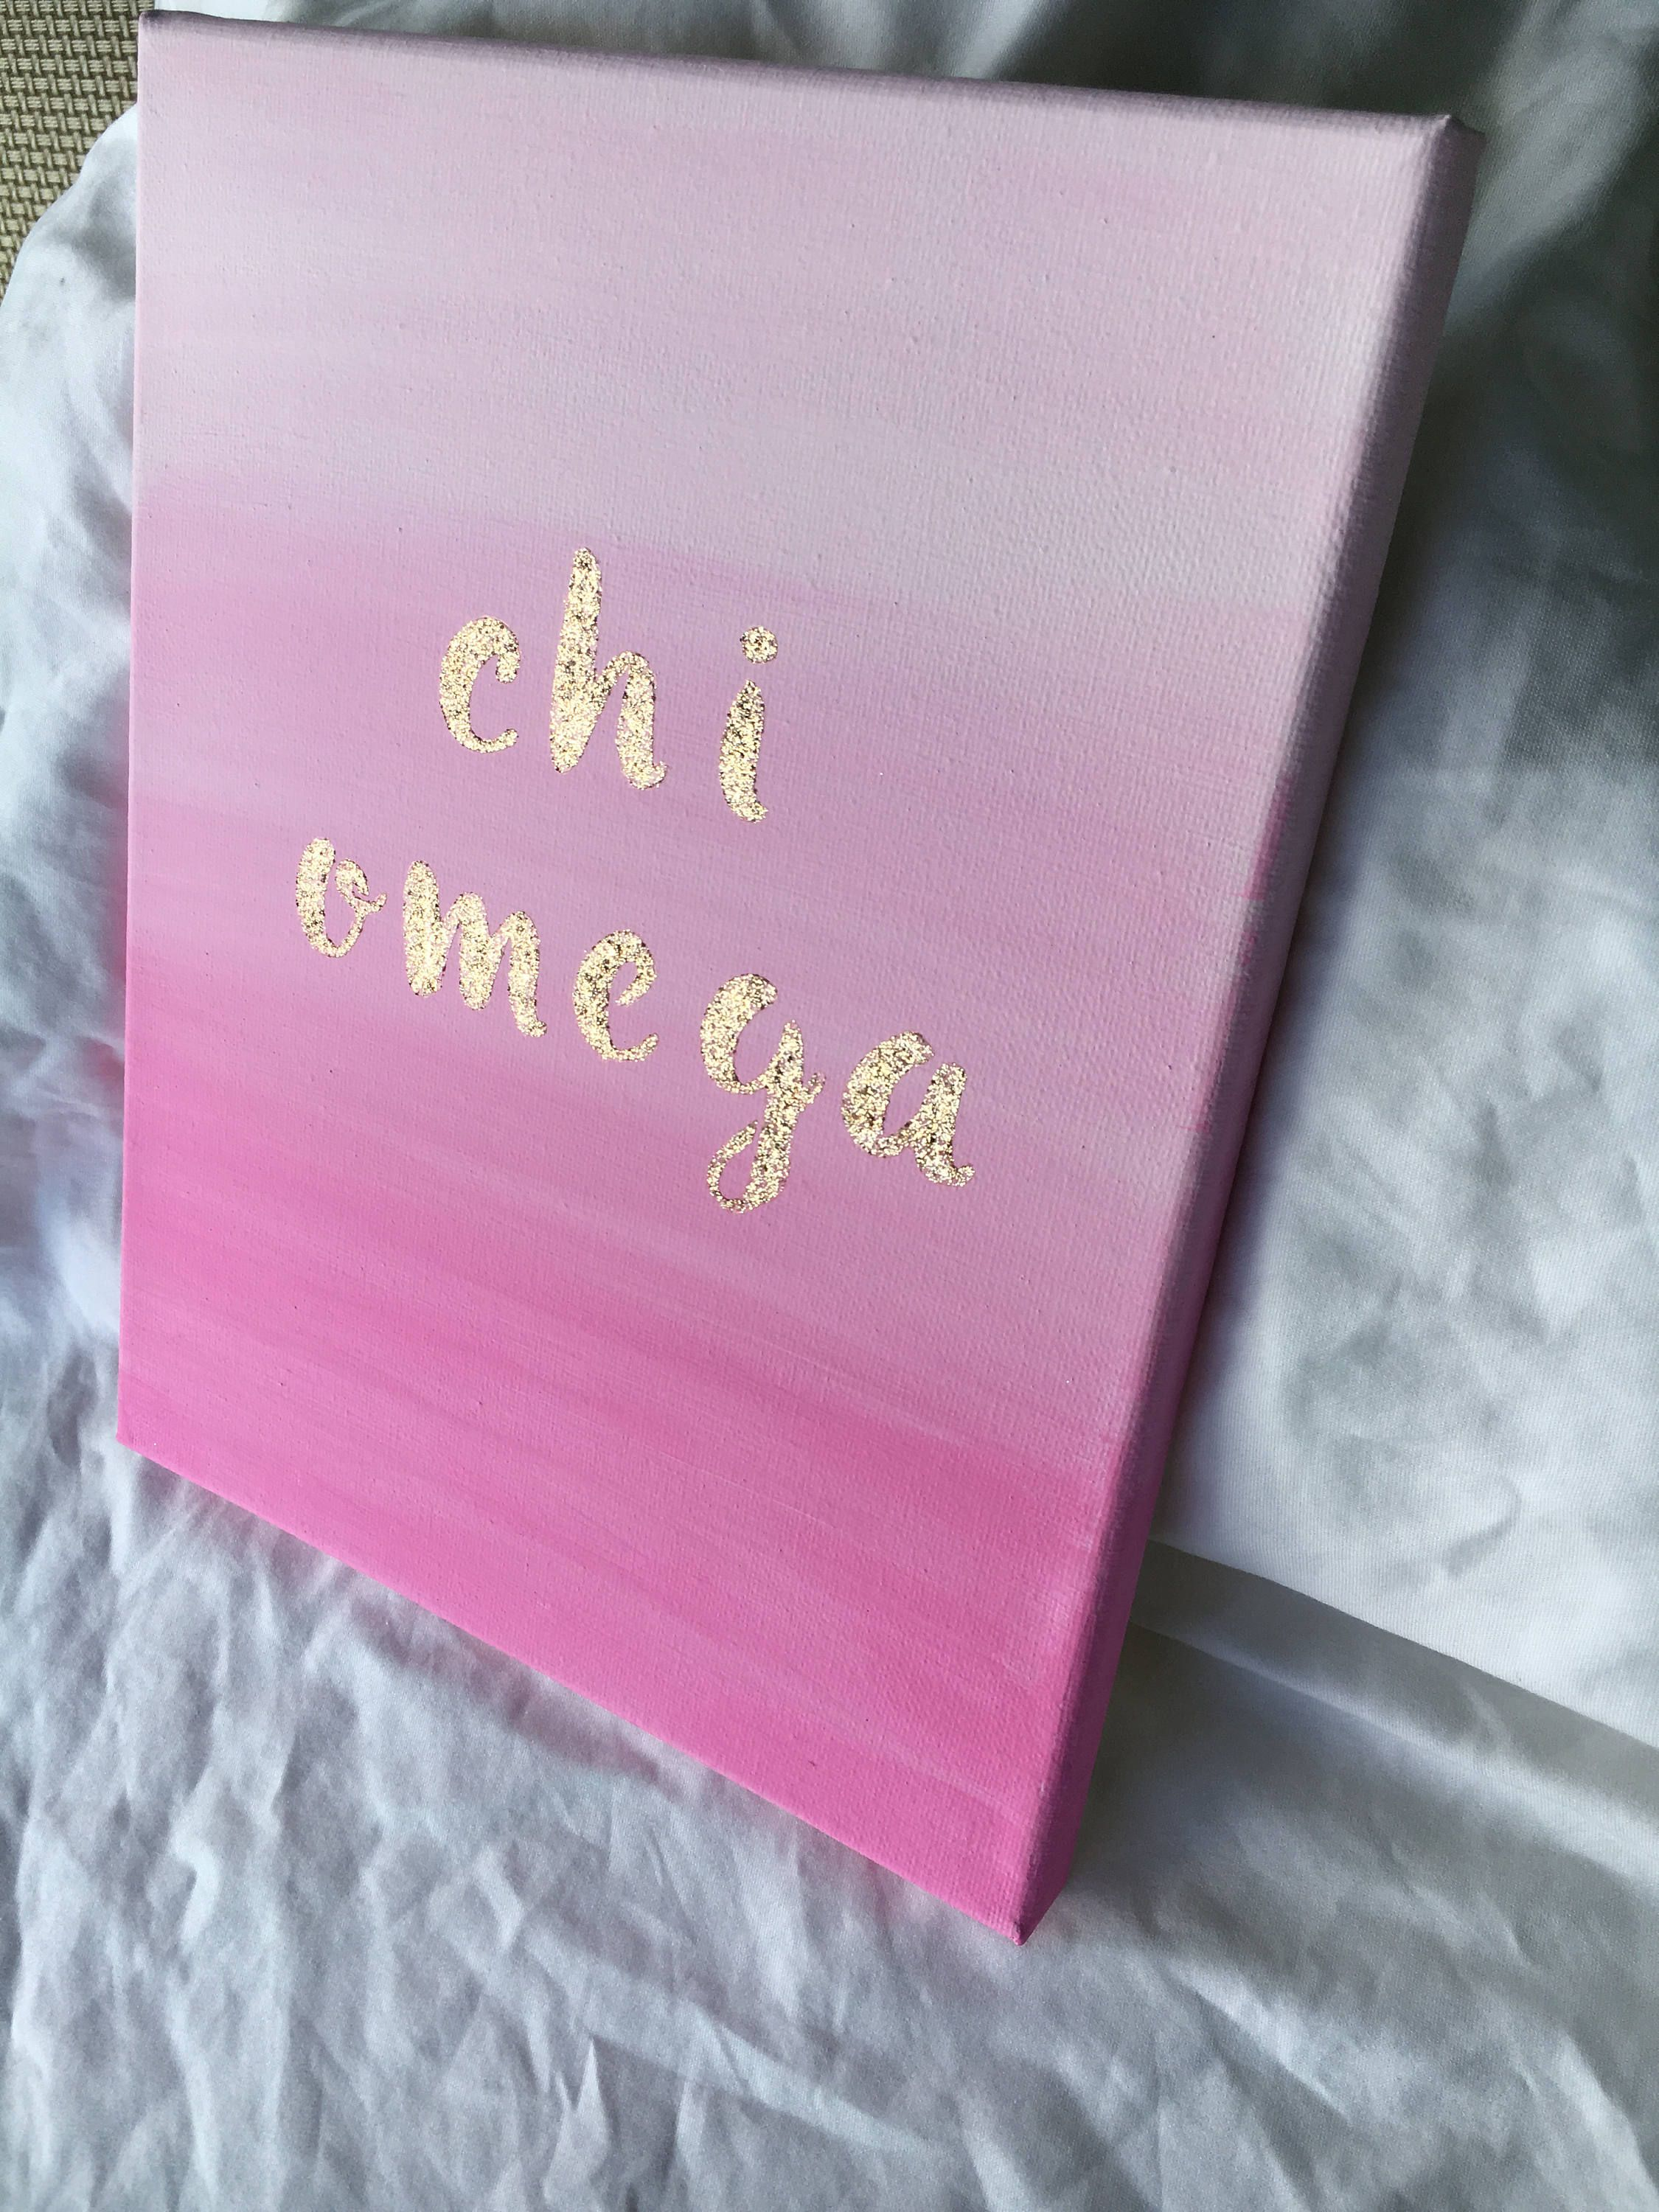 Customizable Glitter Letter Sorority Canvas // Chi Omega // Ombre Pink // Big Little Gift // Spring // Gifts for Her // Gold Sparkle #biglittlecanvas